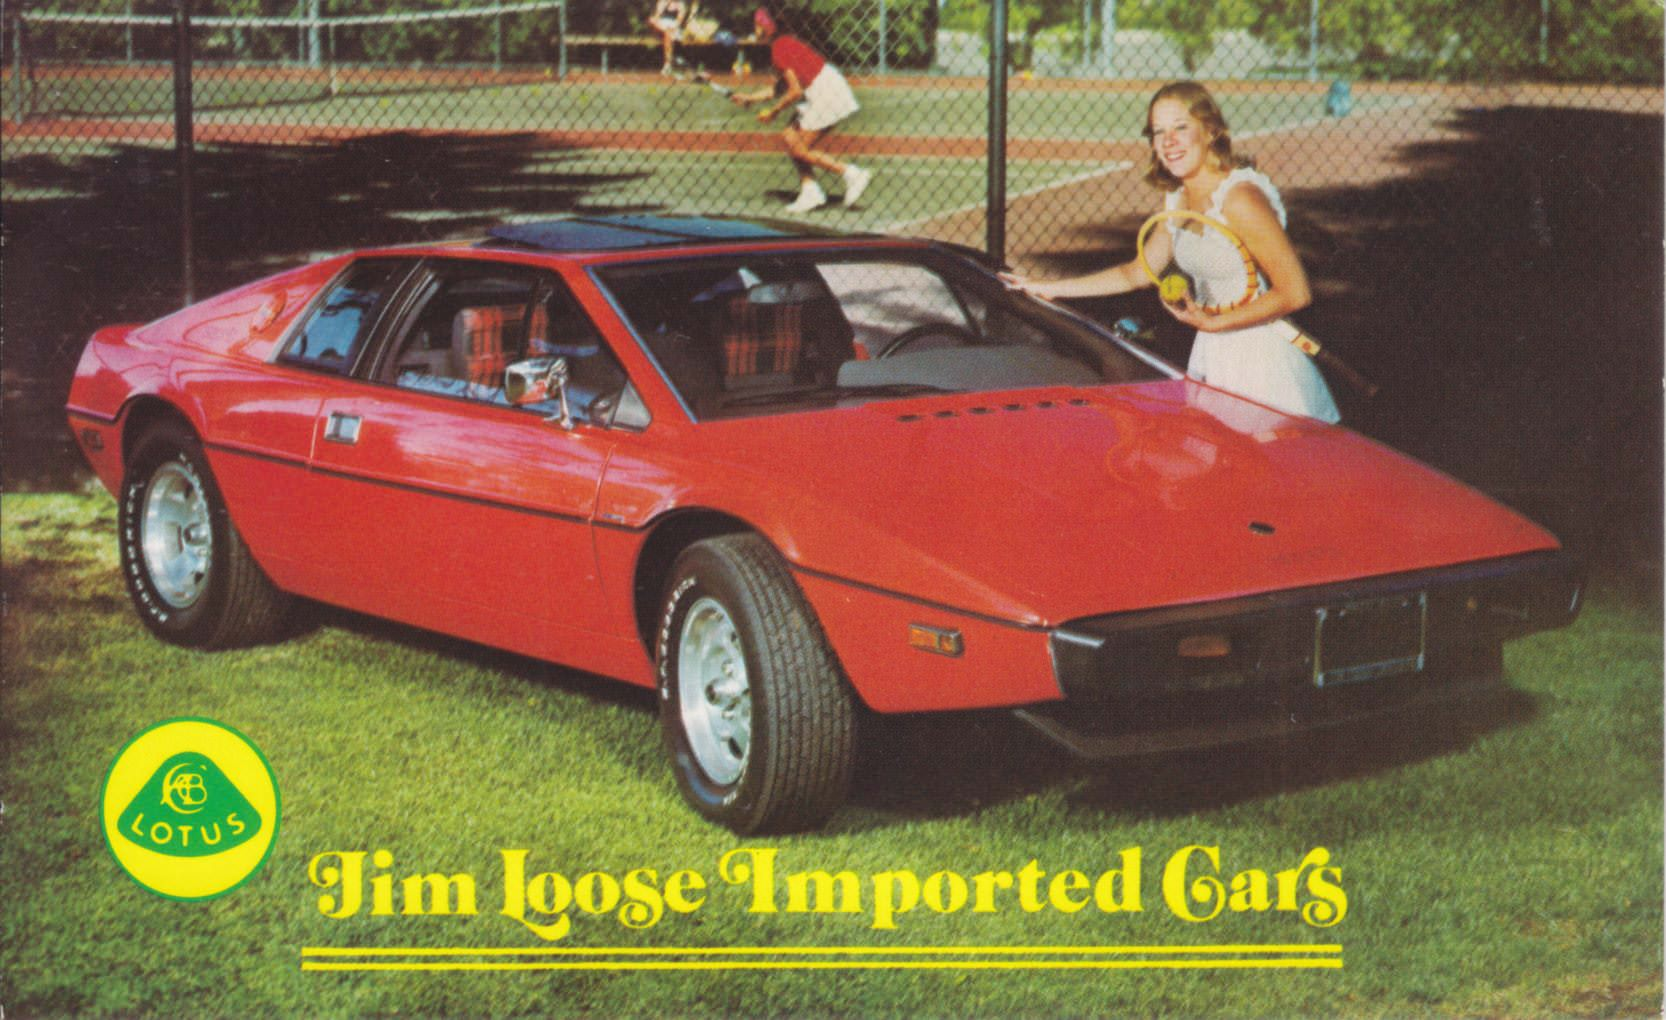 Ital Designs Hong Kong a brief history of the lotus esprit - everything you need to